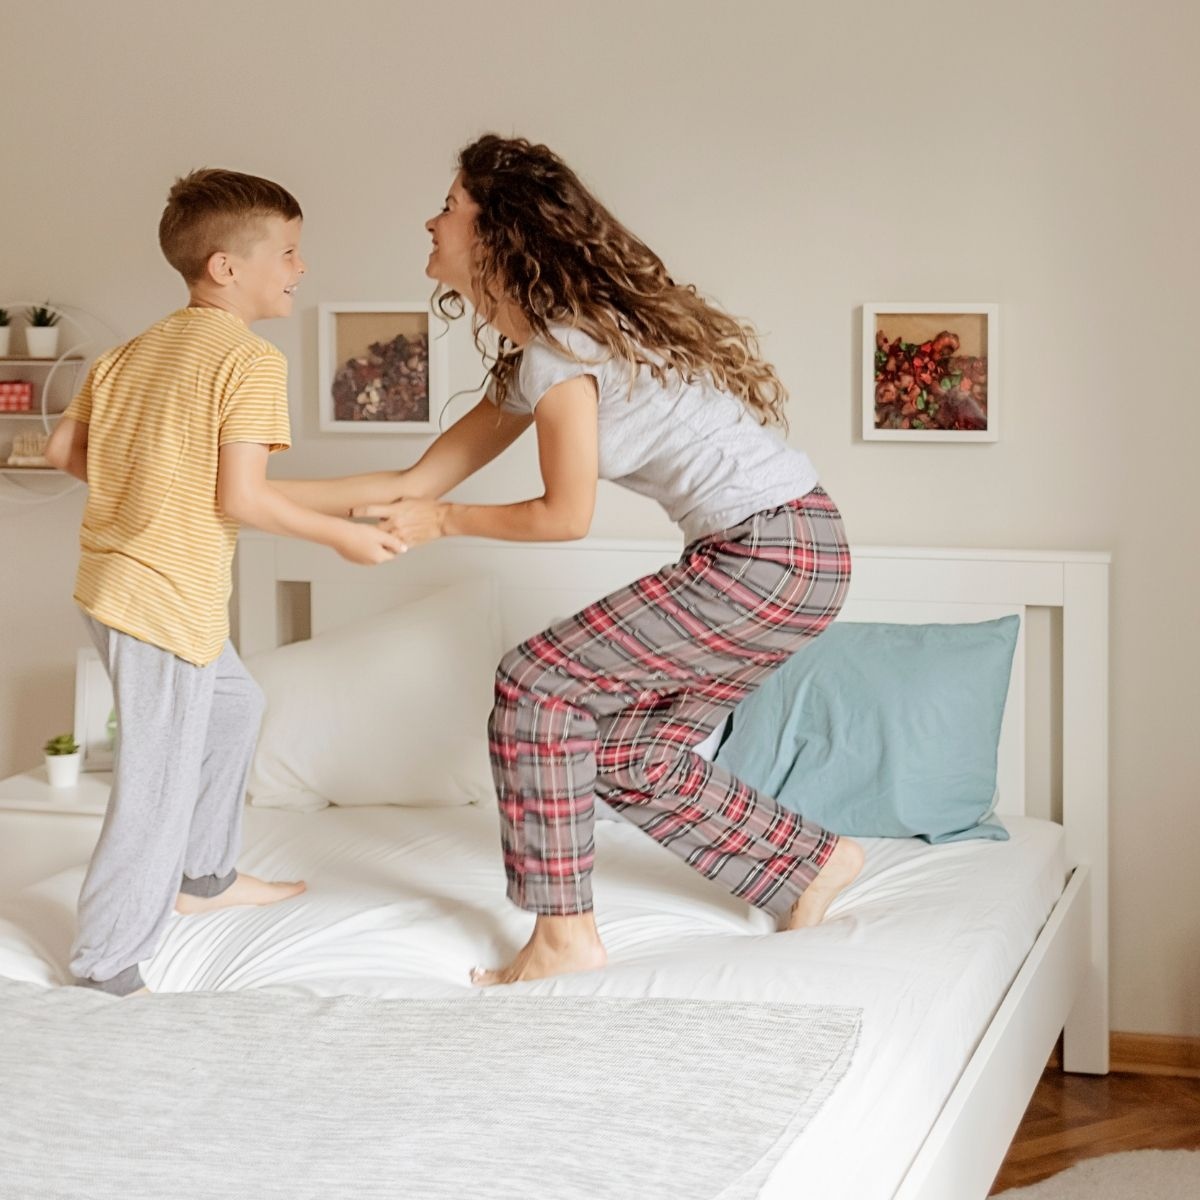 mom and son celebrating the bedroom is clean